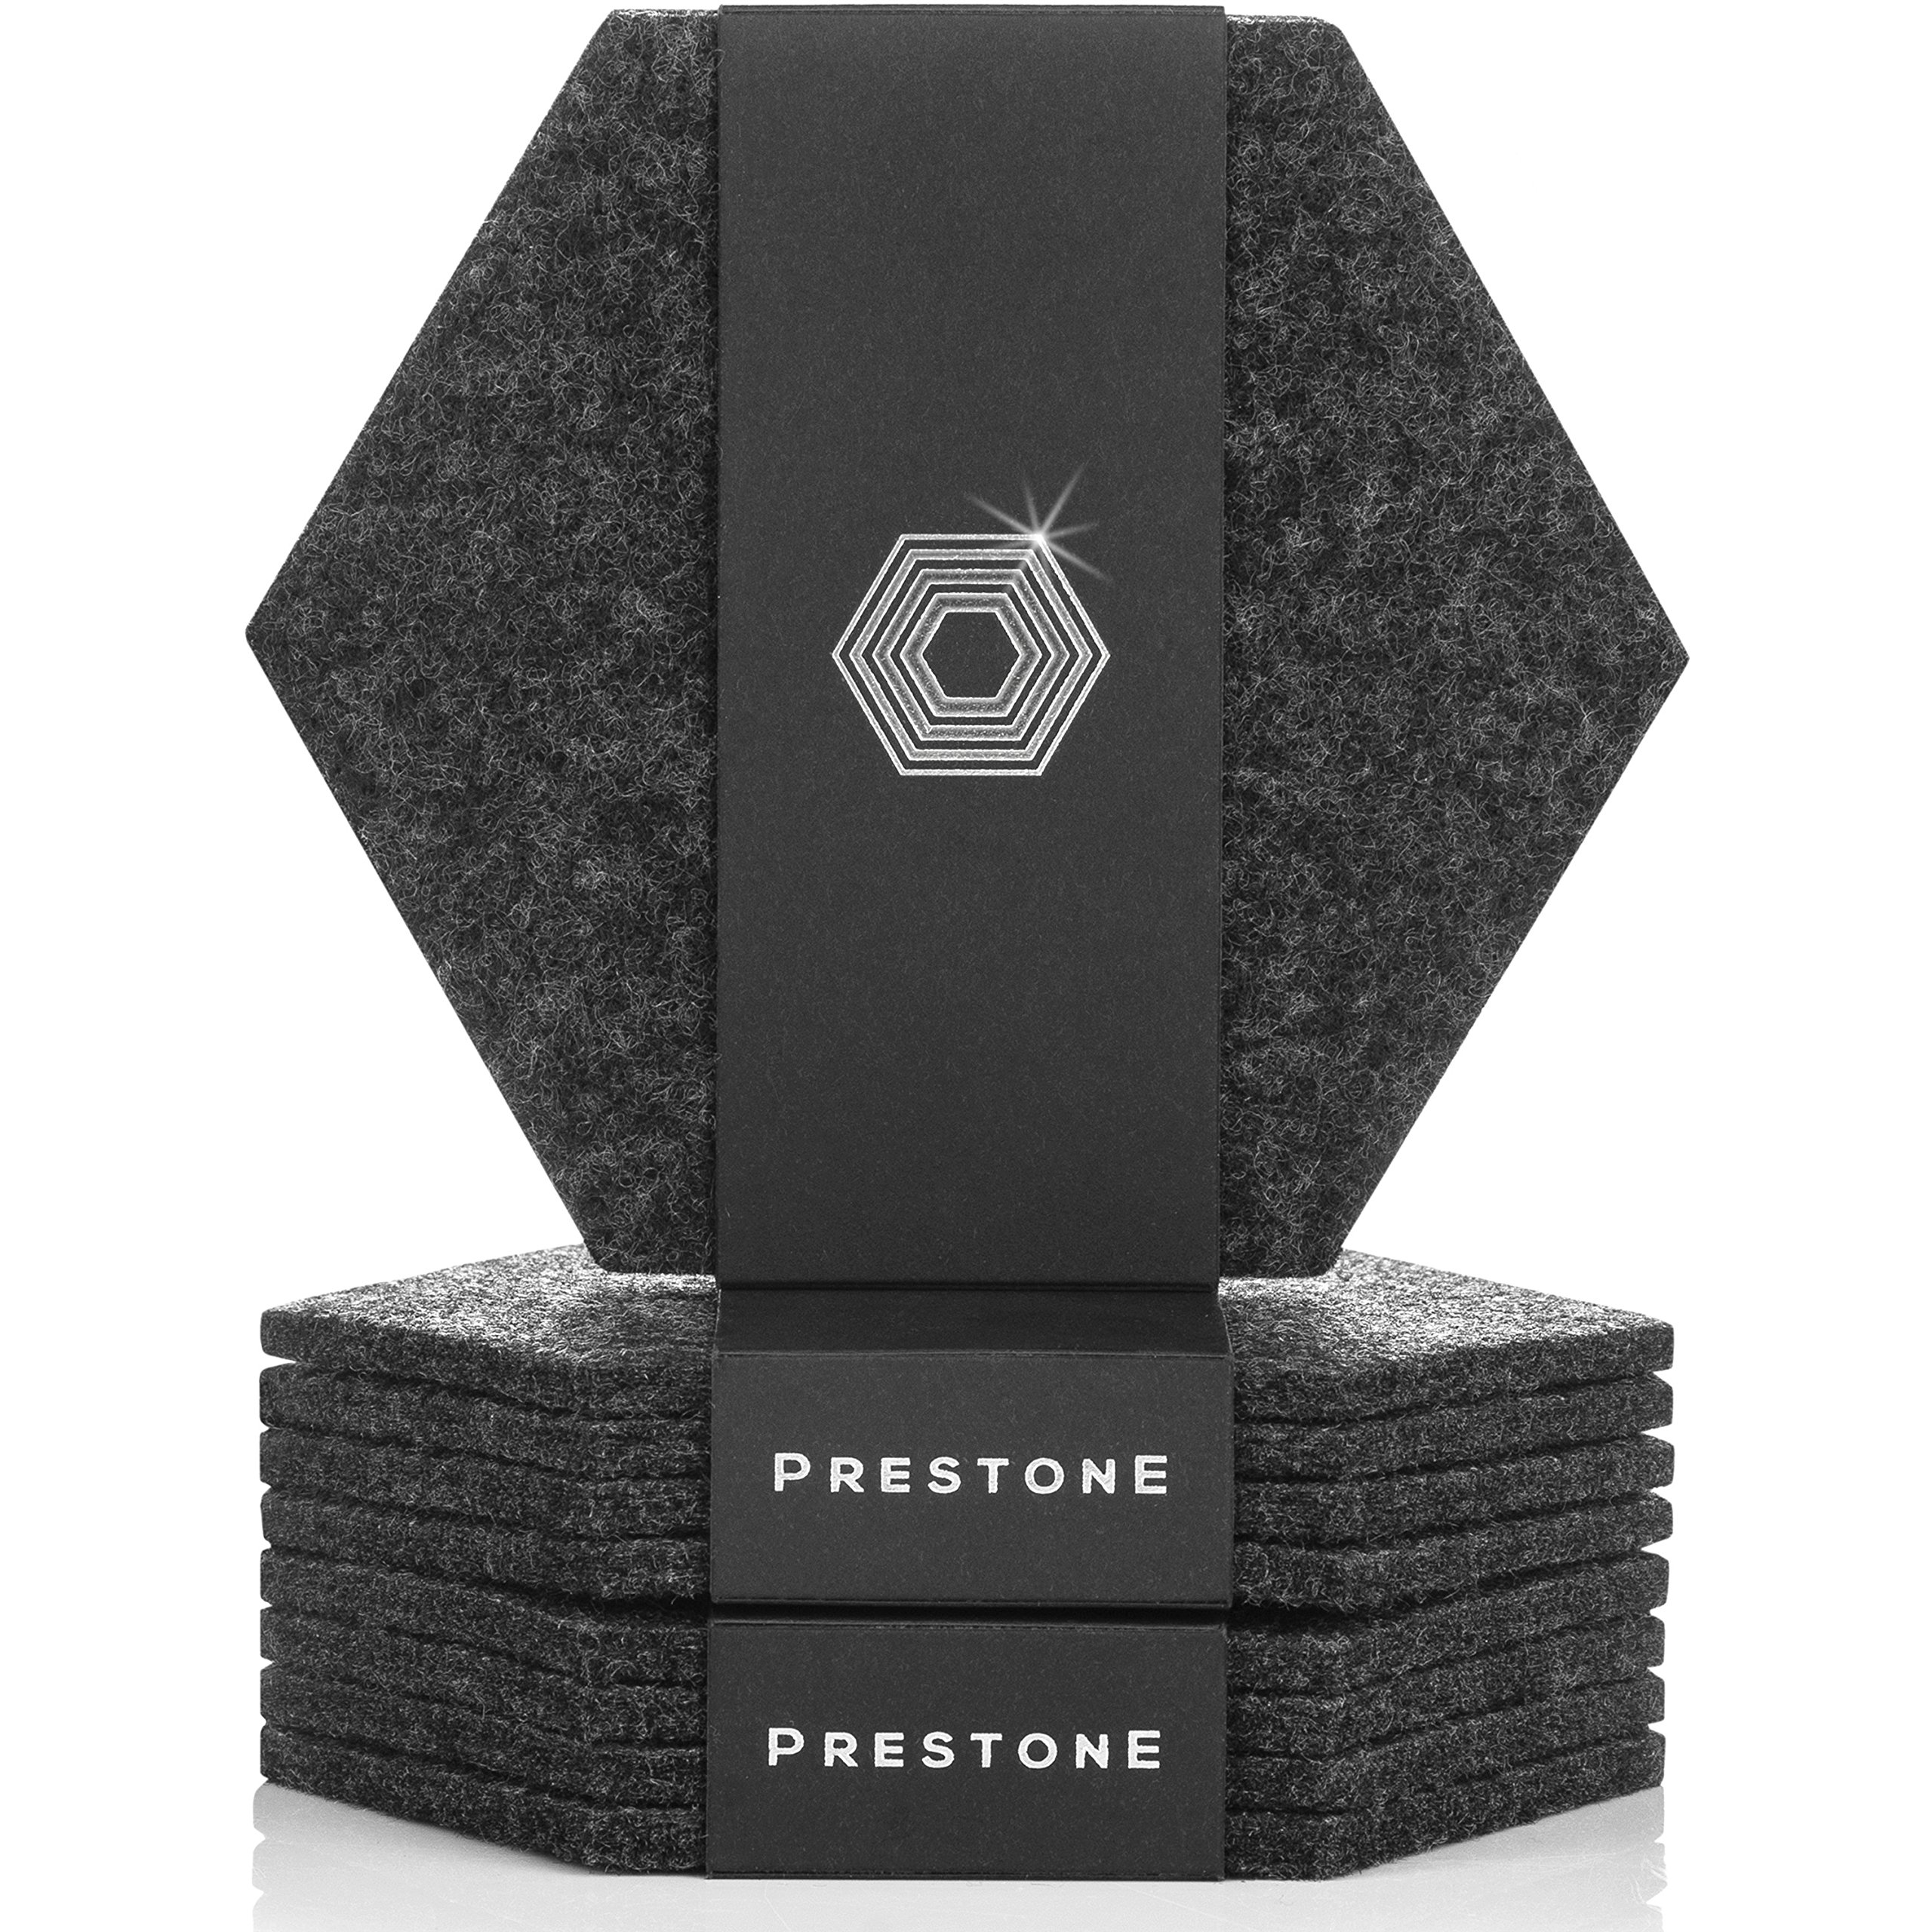 Coasters For Drinks Set of 9 | Absorbent Felt Coasters With Double Holder And Unique Phone Coaster | Premium Package, Perfect Housewarming Gift | Protects Furniture (Hexagon, Charcoal) New 2018